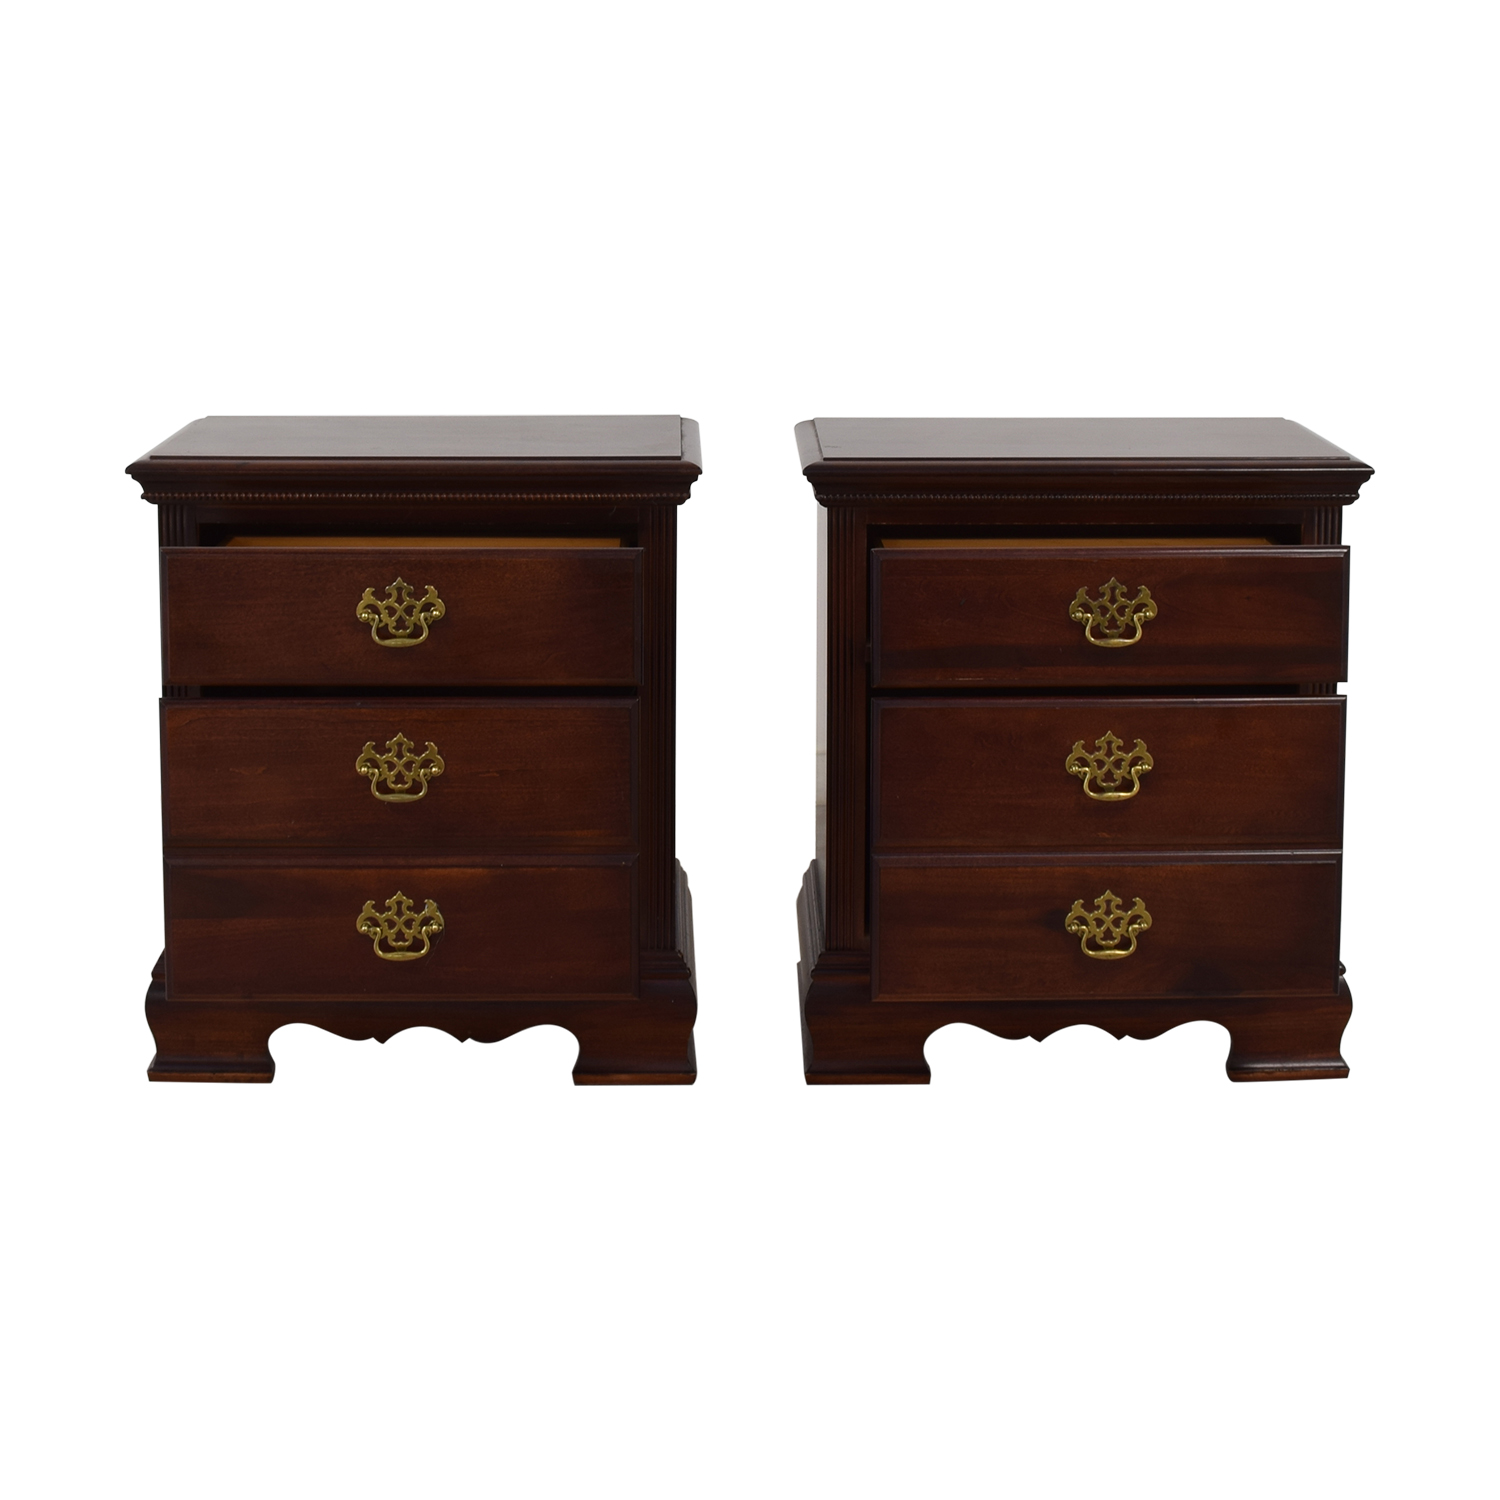 American Drew American Drew Three-Drawer Nightstands for sale